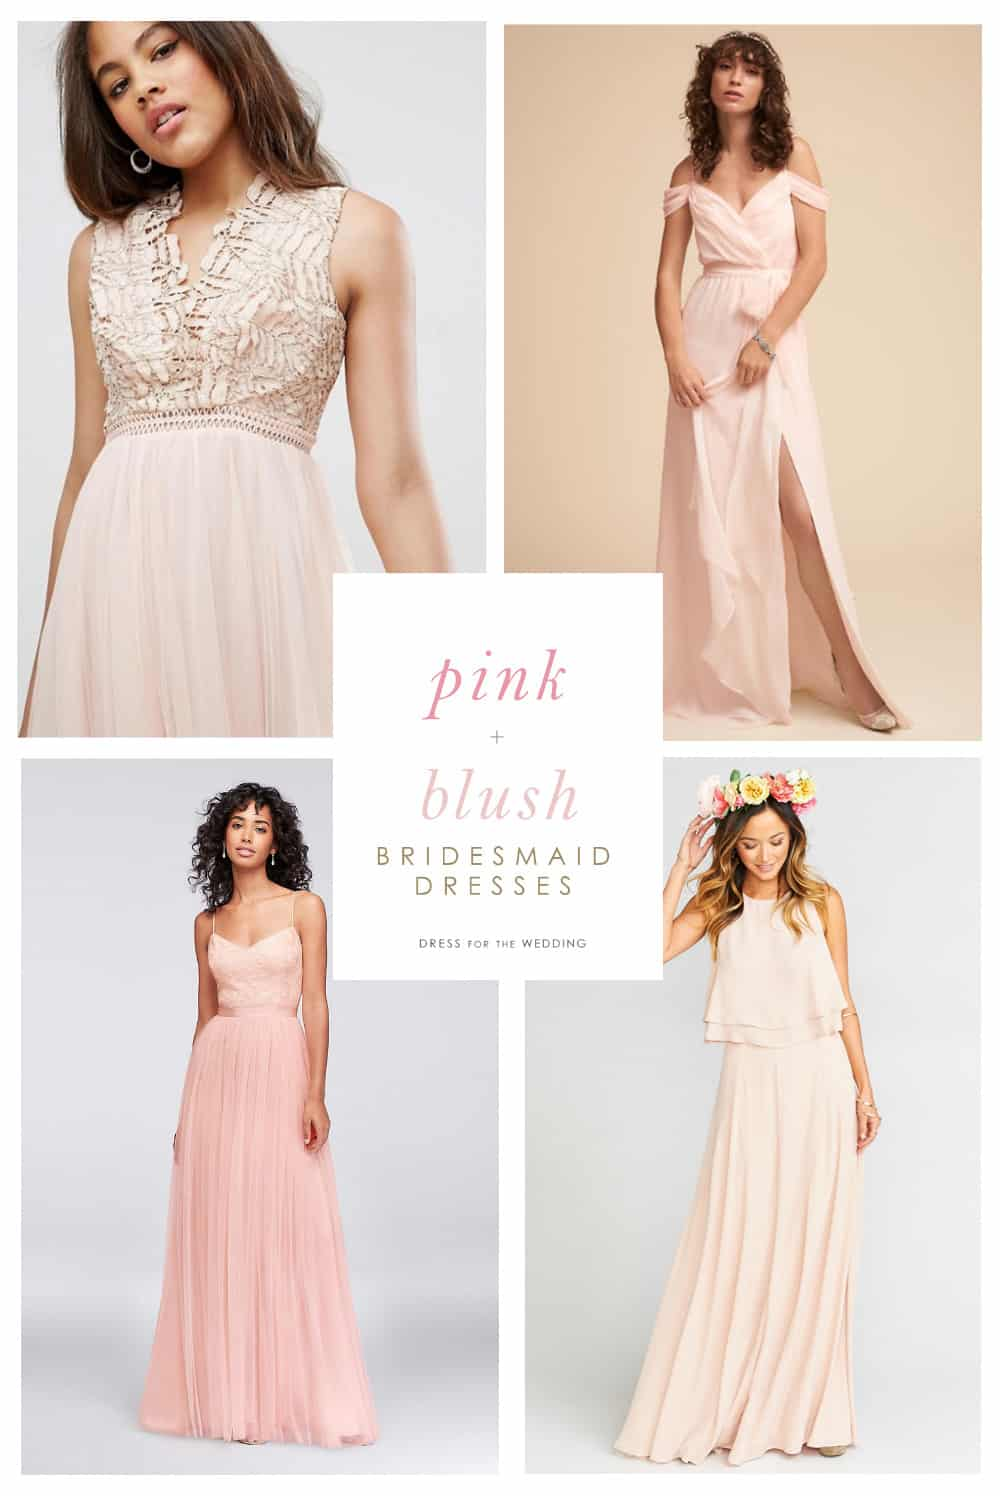 Blush and Pink Bridesmaid Dresses for Weddings